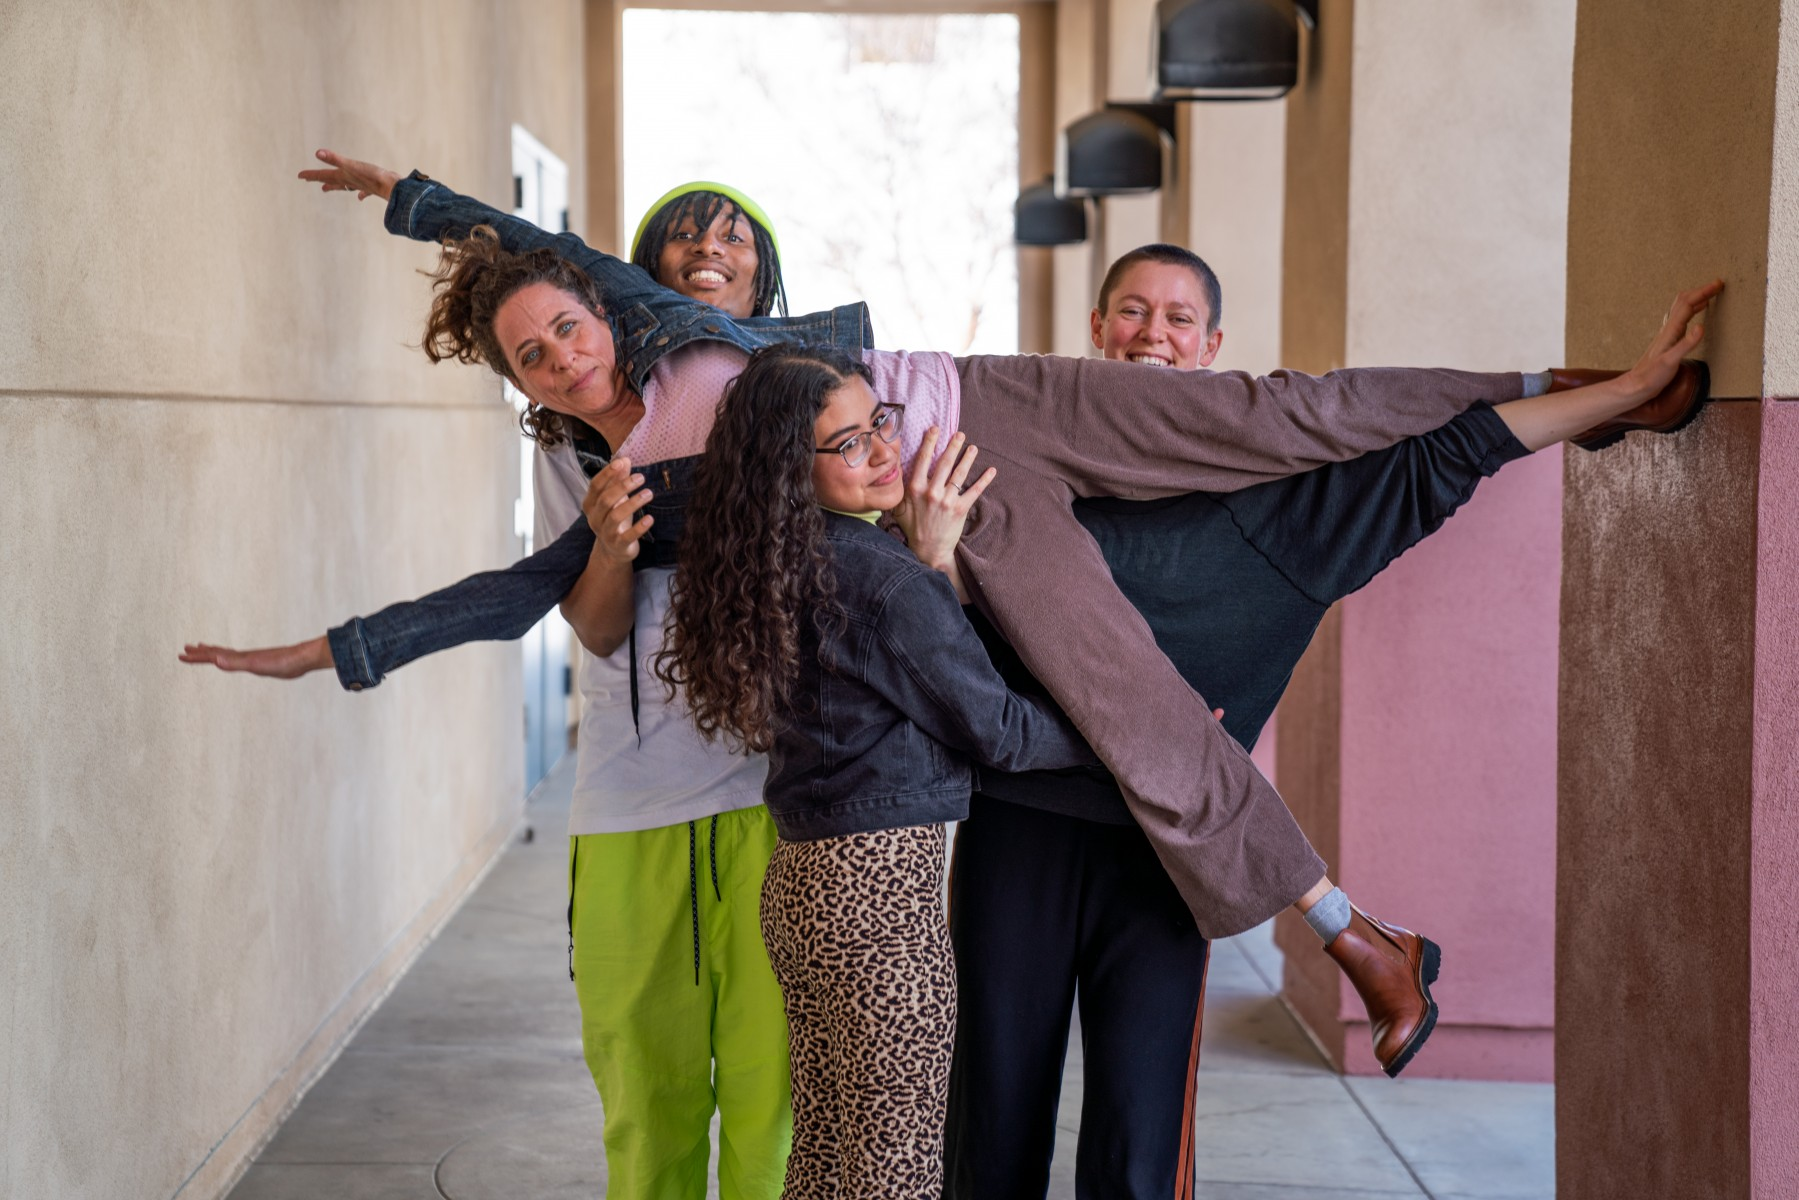 Karen Schaffman is lifted up by (from left to right) Caiser LeBoss Owens, Lesly Rodriguez and Anya Cloud. Photo by Chandler Oriente